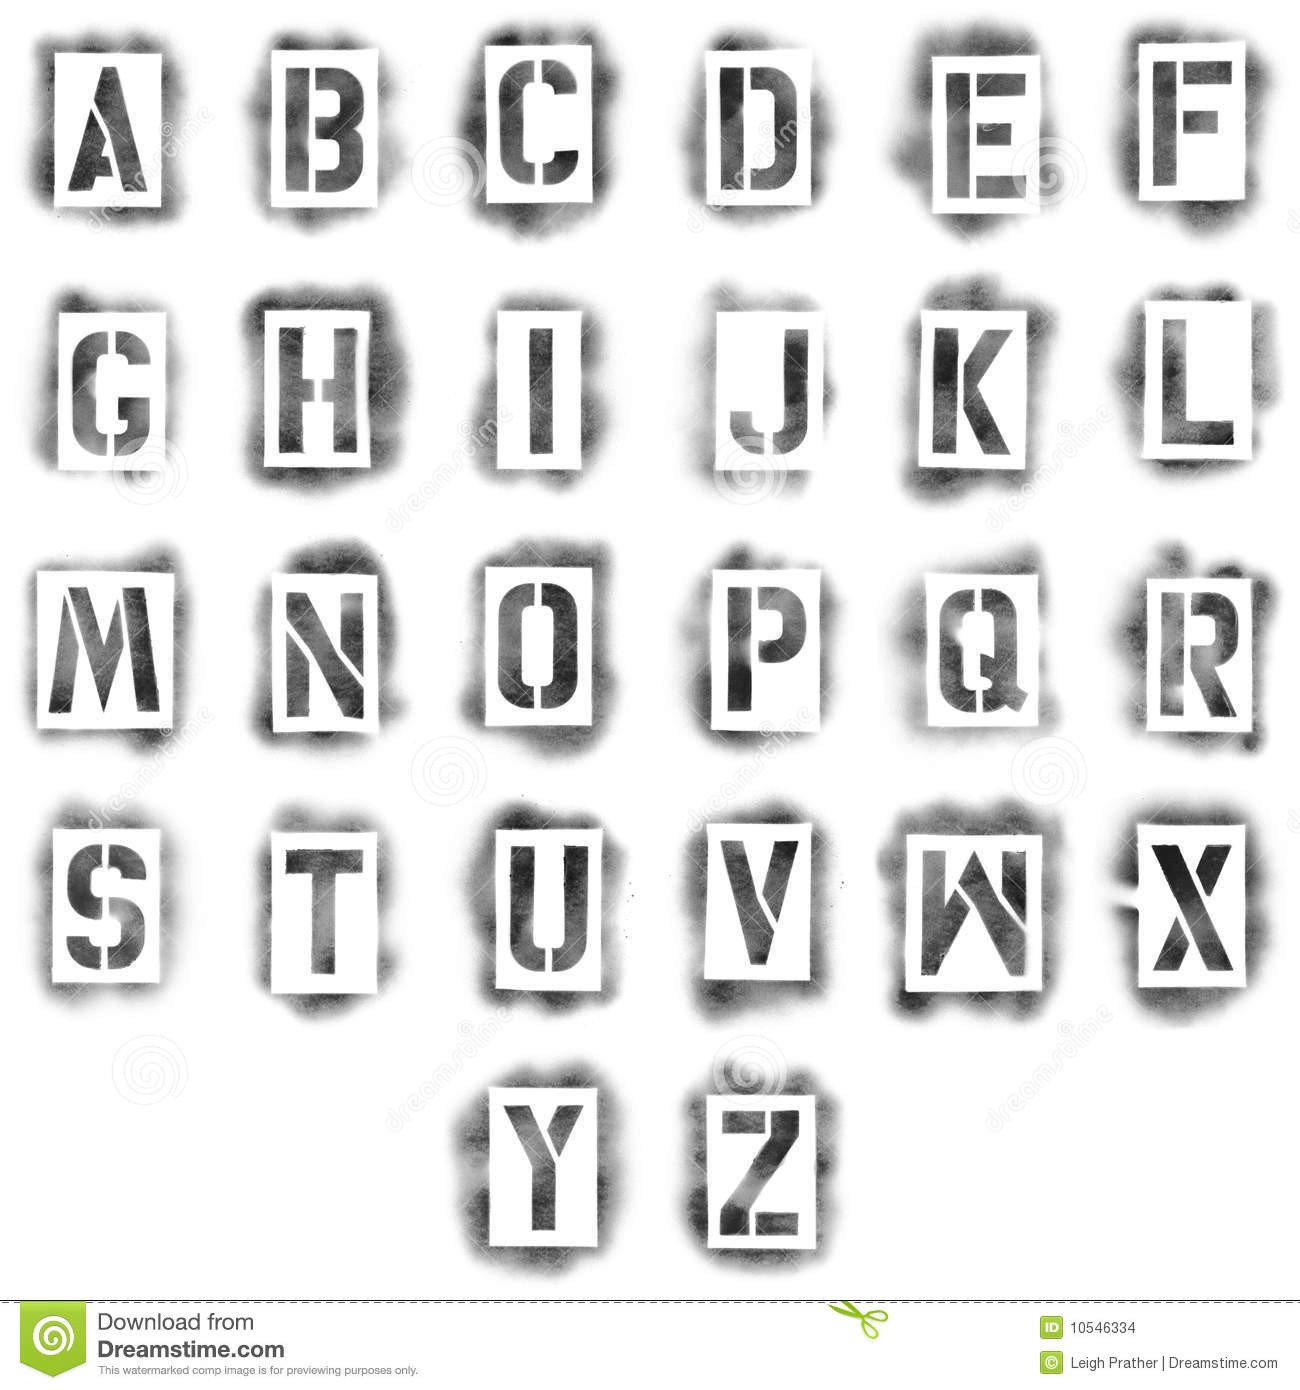 Spray Paint Letter Stencils Stencils In Spray Paint Stock Illustration Image Of